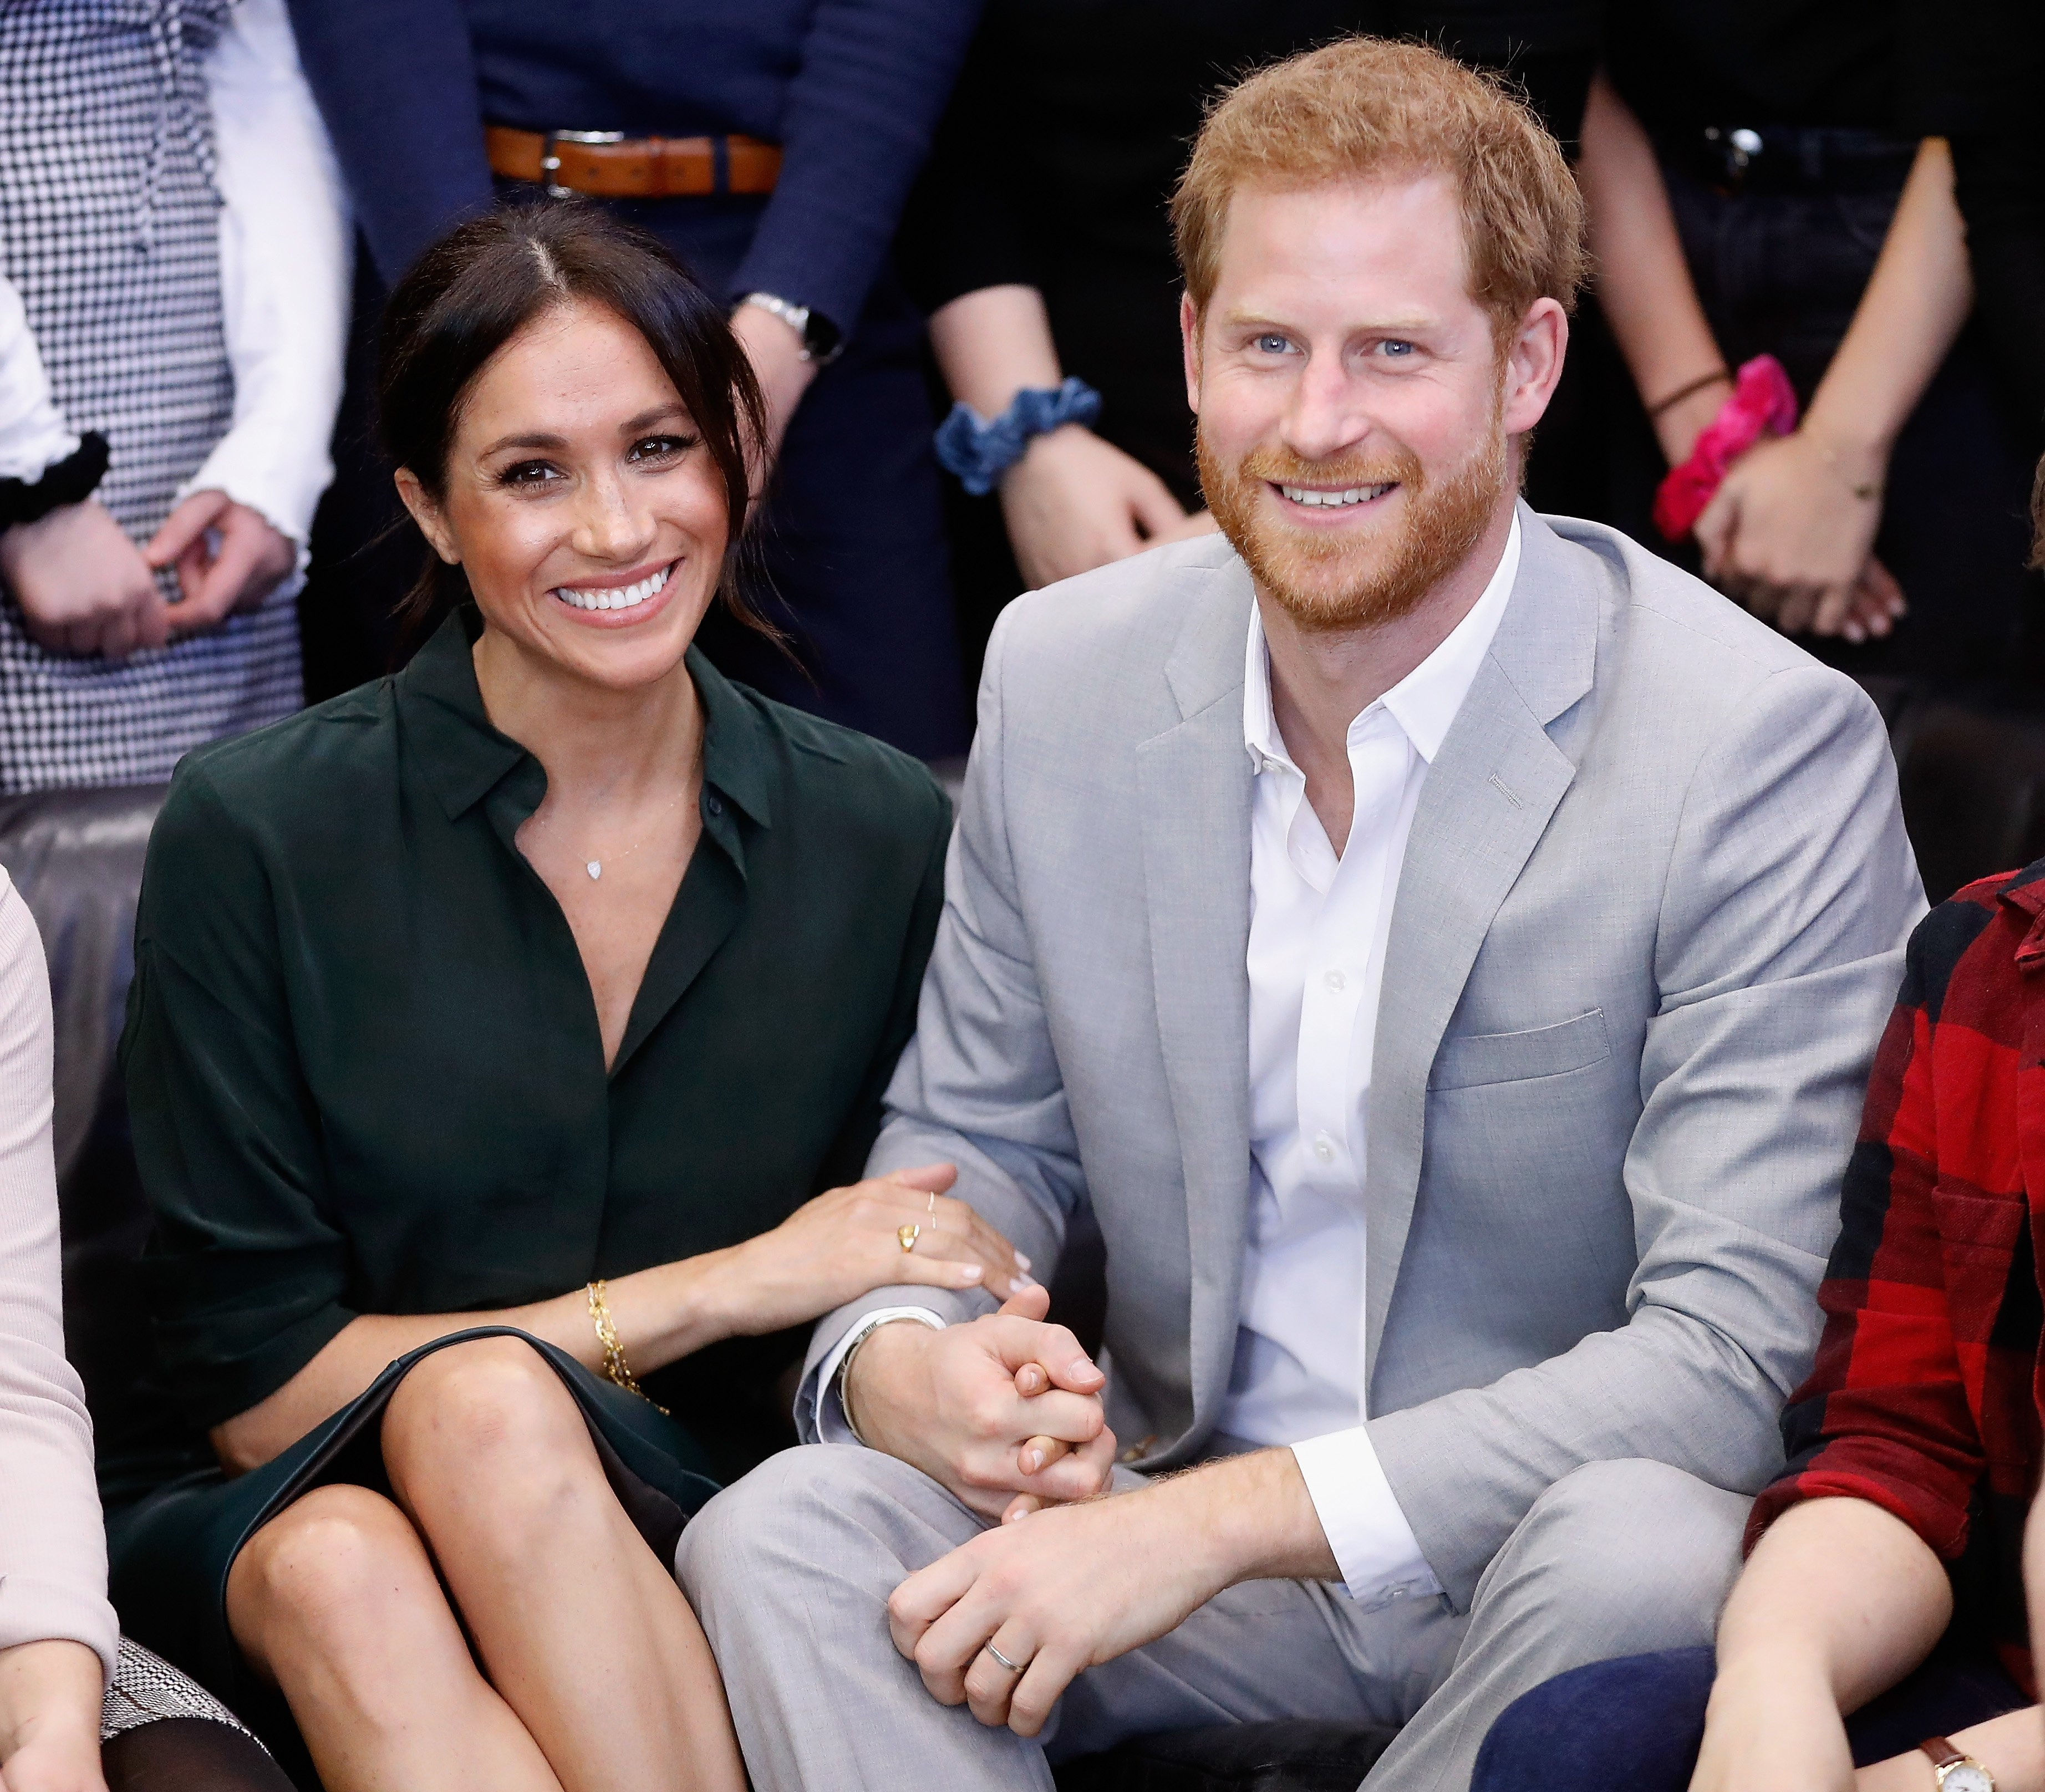 Meghan, Duchess of Sussex and Prince Harry, Duke of Sussex make an official visit to the Joff Youth Centre in Peacehaven, Sussex on October 3, 2018 |Photo: Getty Images